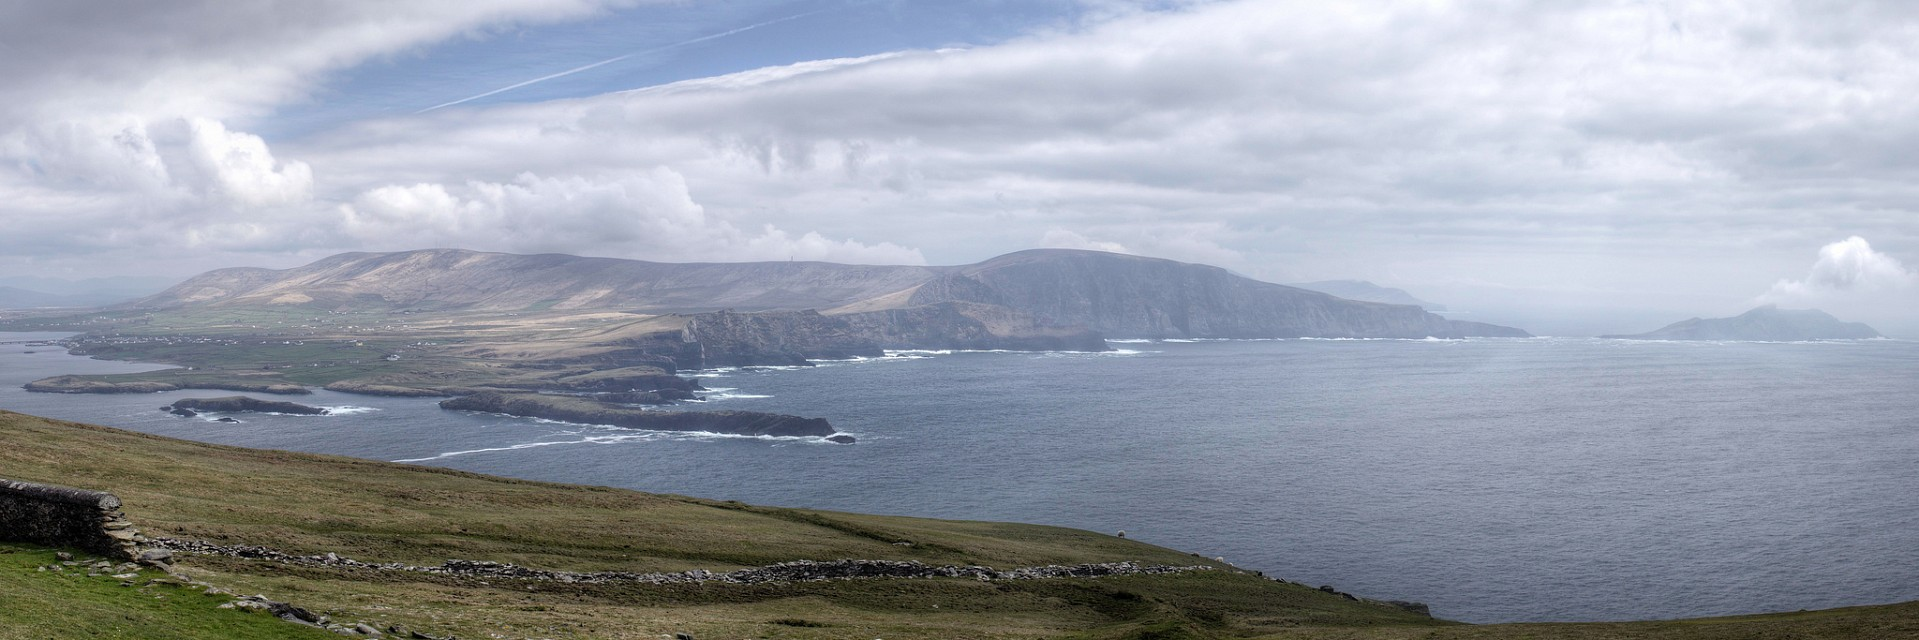 Portmagee and the Cliffs - Ring of Kerry